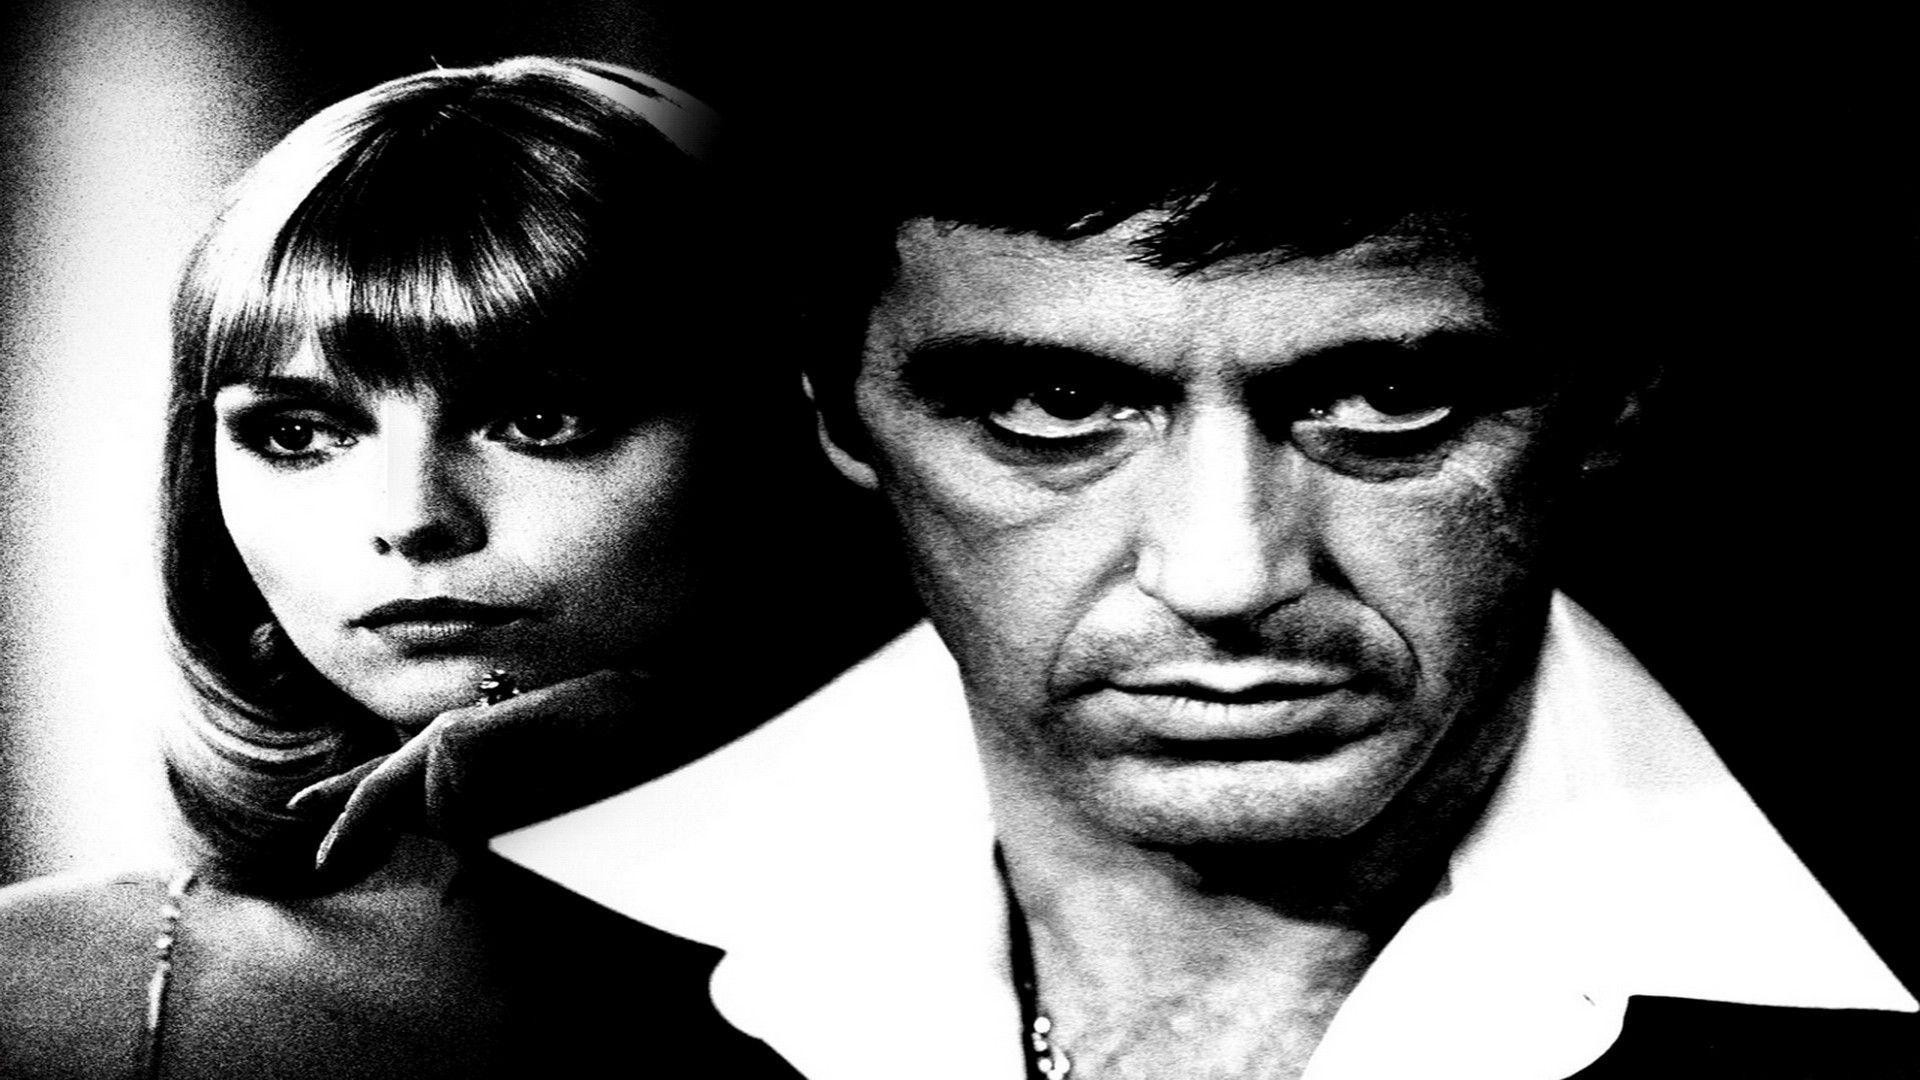 1920x1080 Scarface-Wallpapers-Scarface-film-movies scarface wallpaper HD .